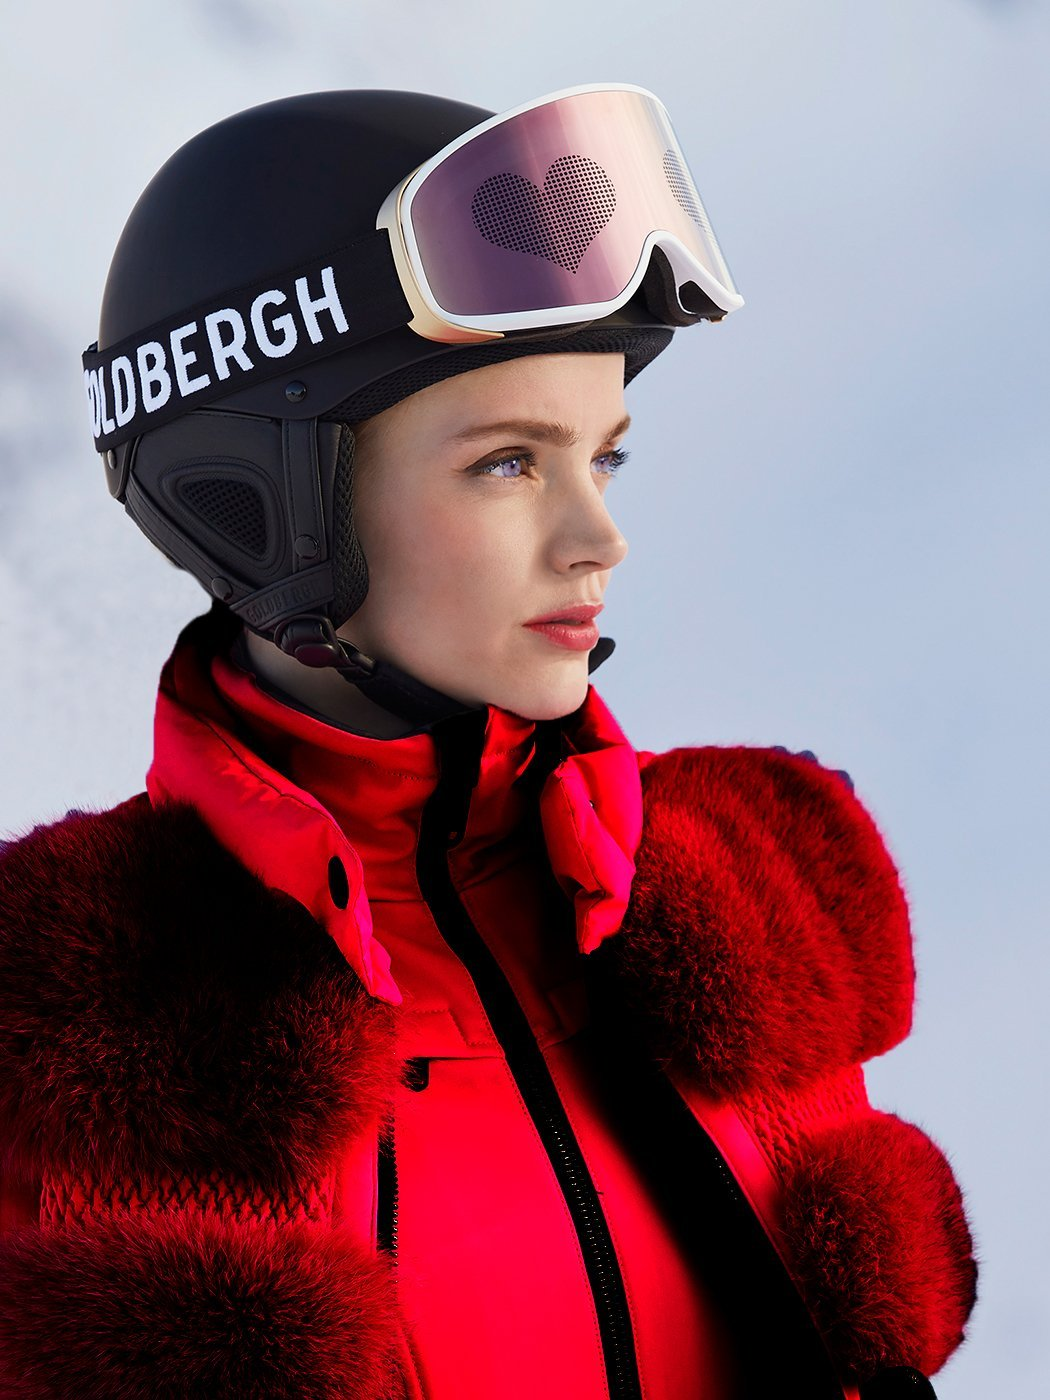 Take Care of your Ski Wear, so that it lasts for years